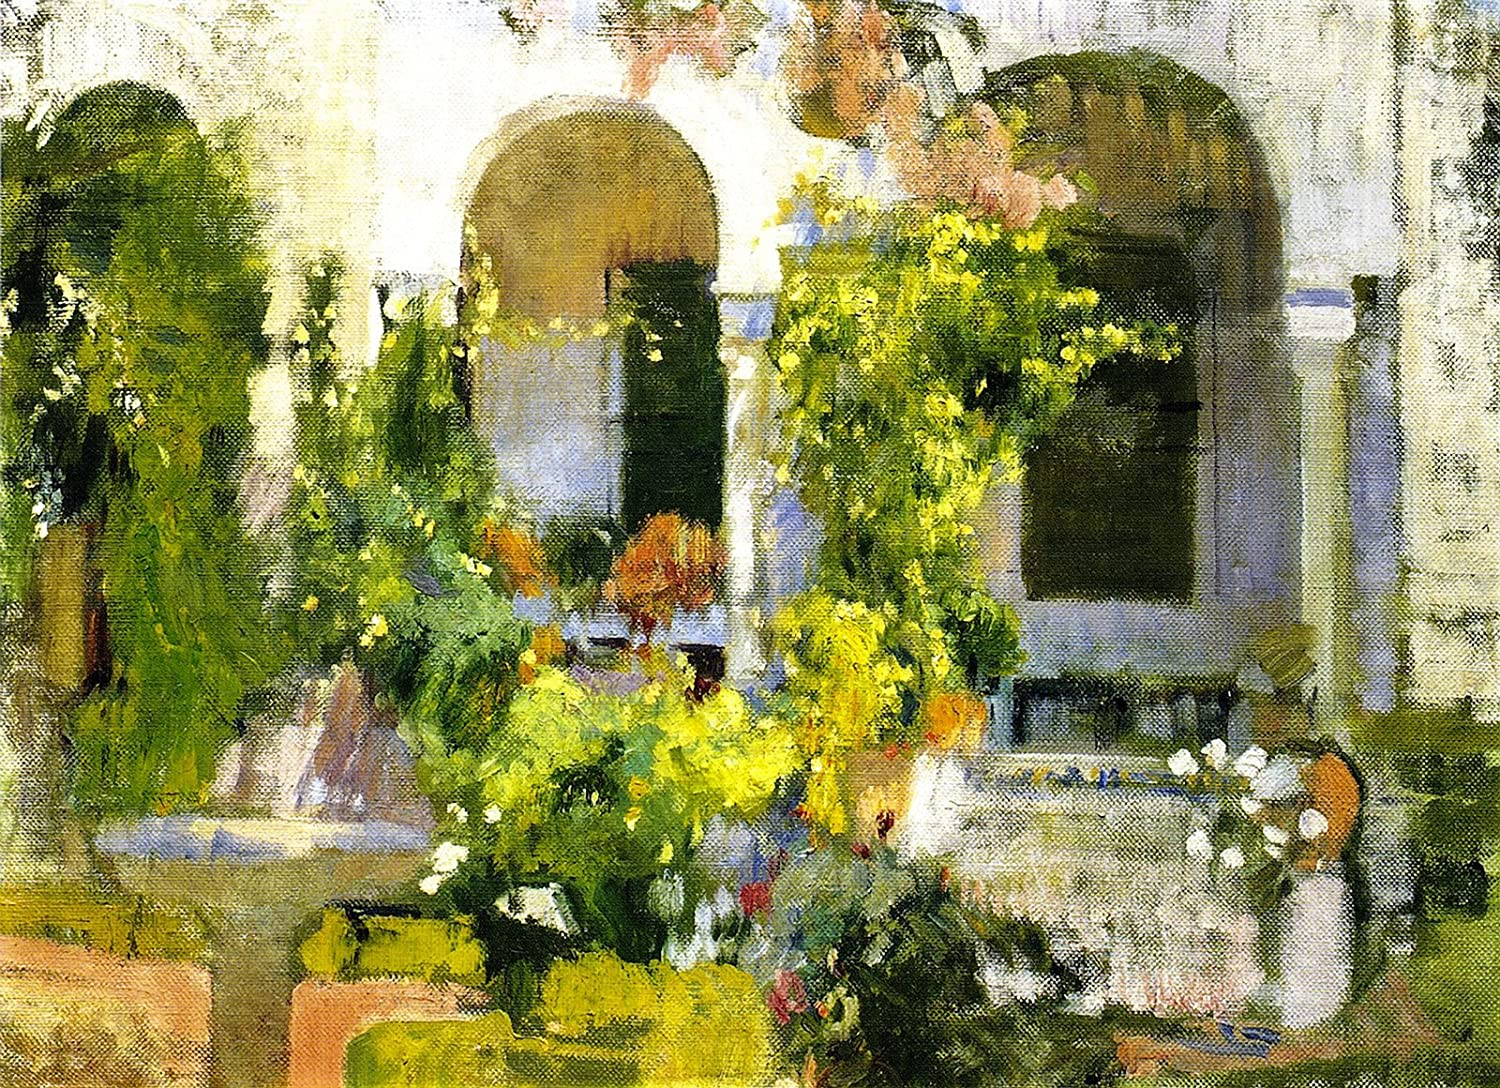 Amazon.com: Joaquin Sorolla y Bastida Garden of The Sorolla ...